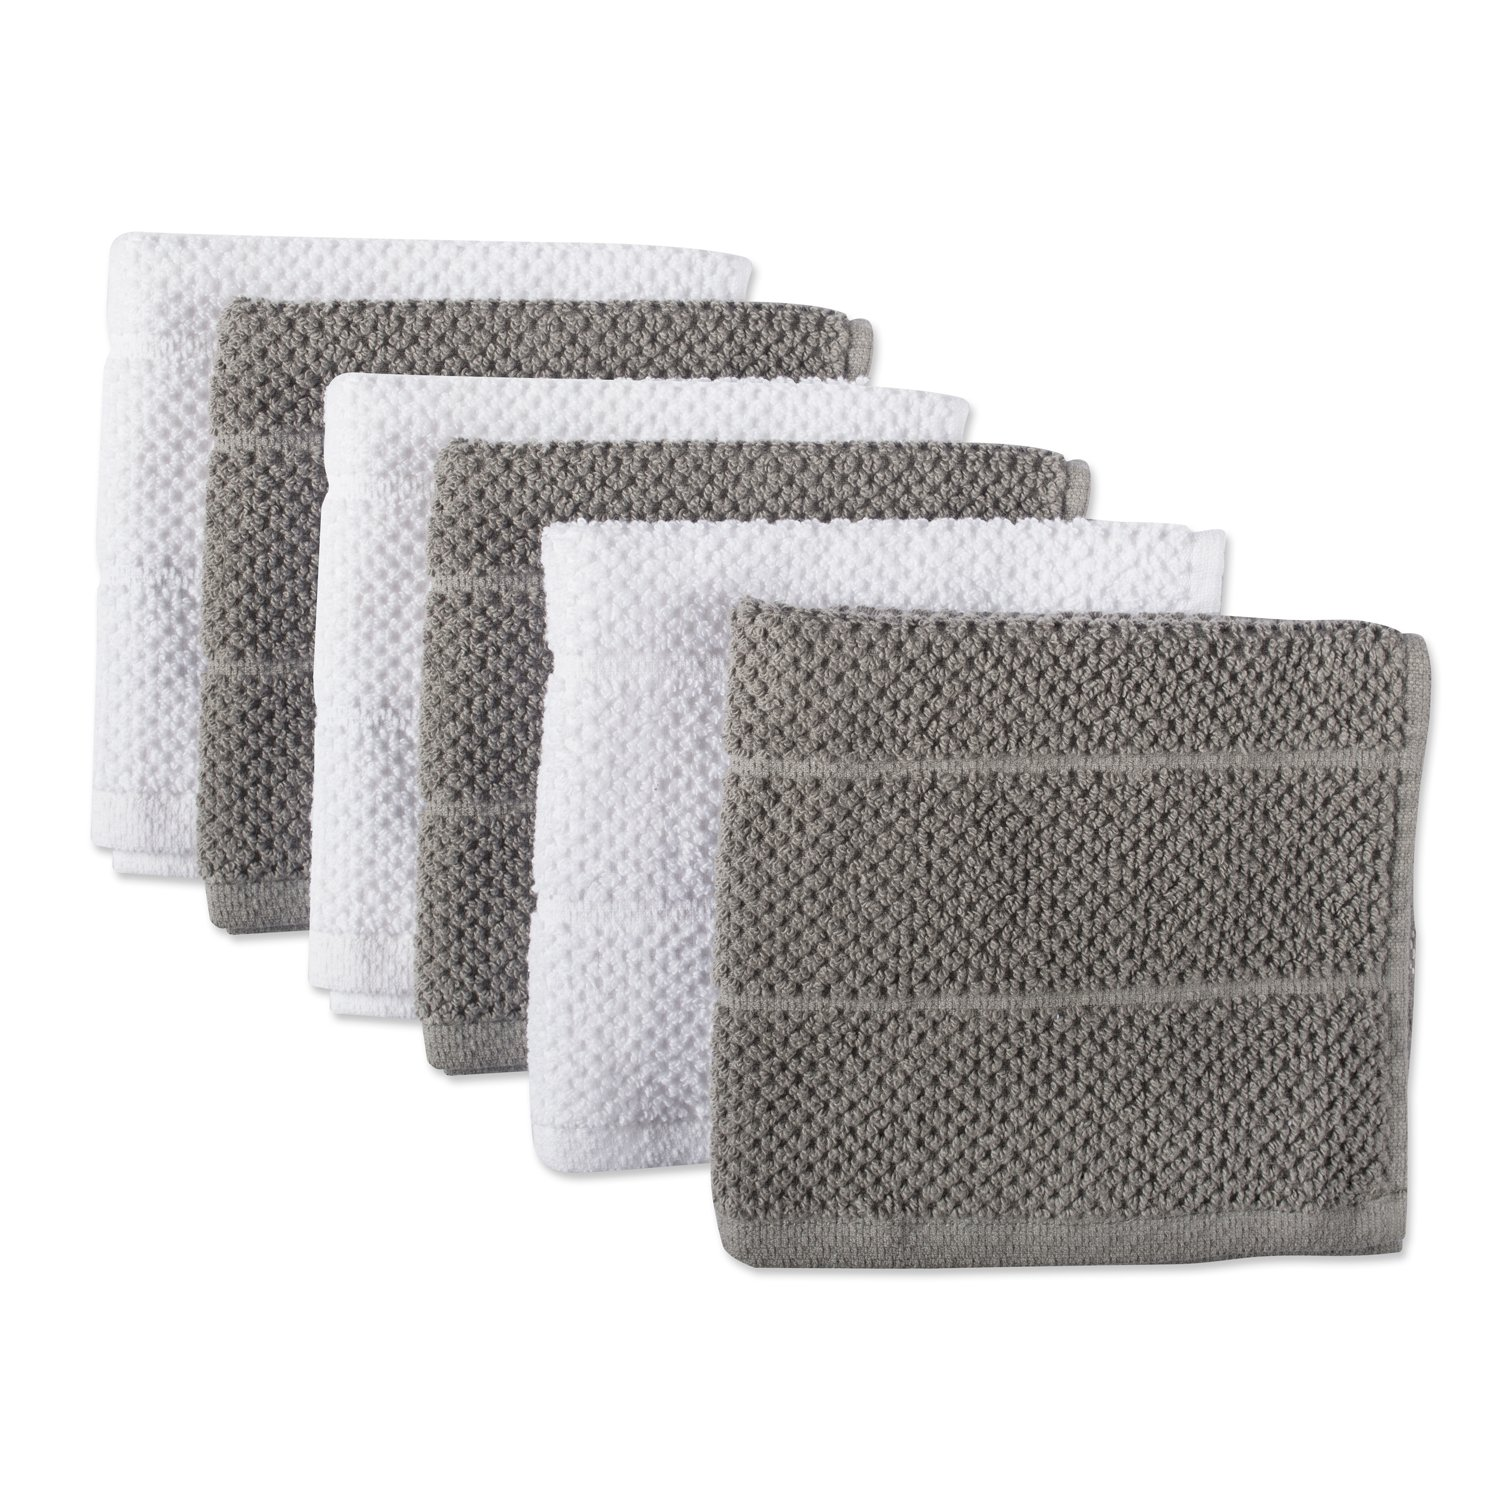 DII 100% Cotton Ultra-Absorbent Cleaning Drying Luxury Chef Terry Dish Cloths for Everyday Kitchen Basic 12 x 12 Set of 6- Gray/White